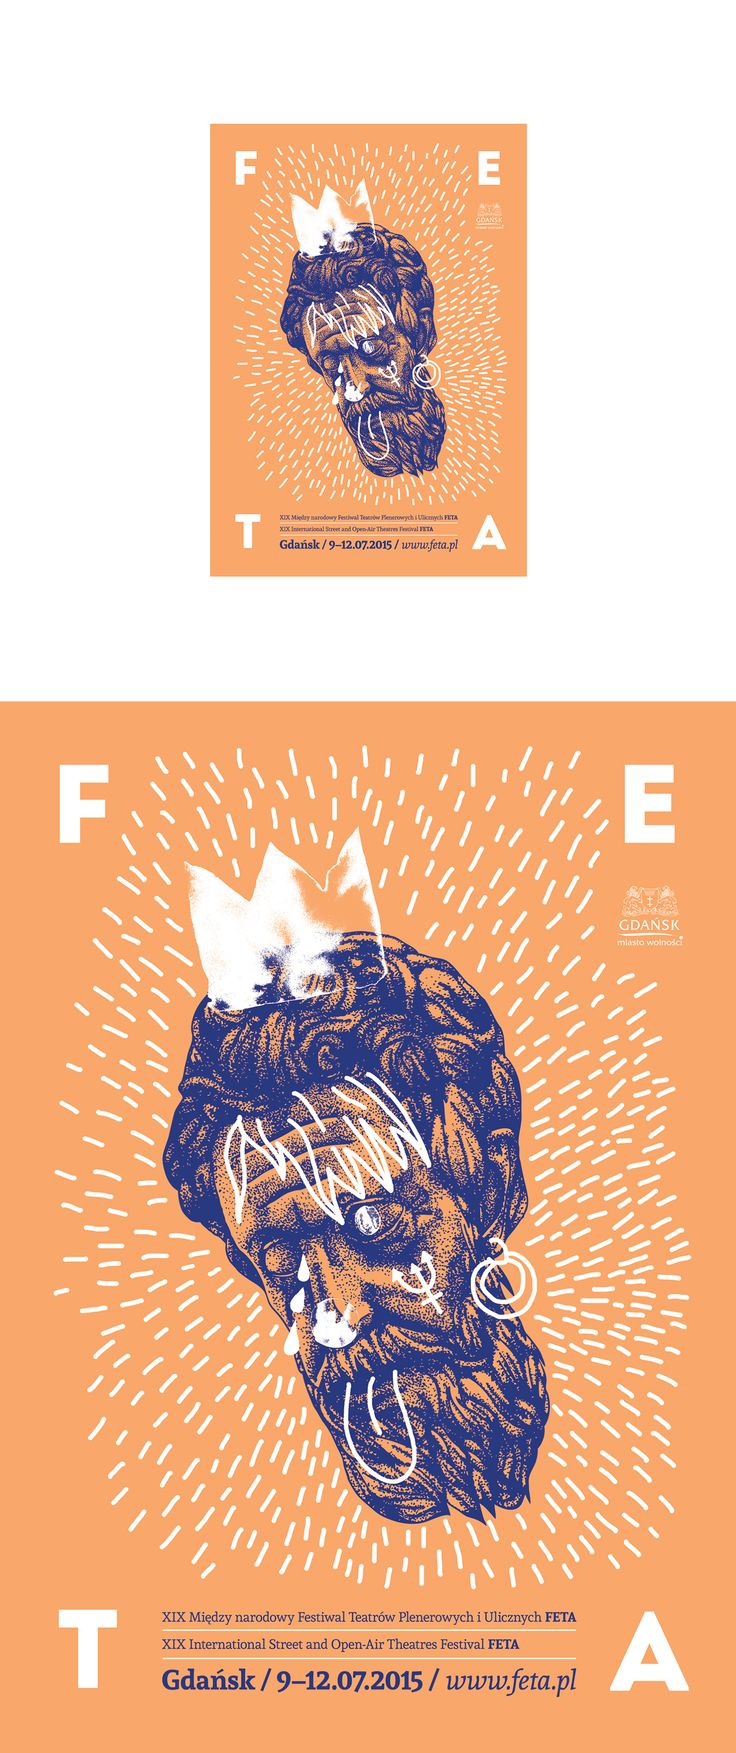 Poster design pinterest - Poster For Street Theatre Festival Feta Made For Poster Design Classes 2015